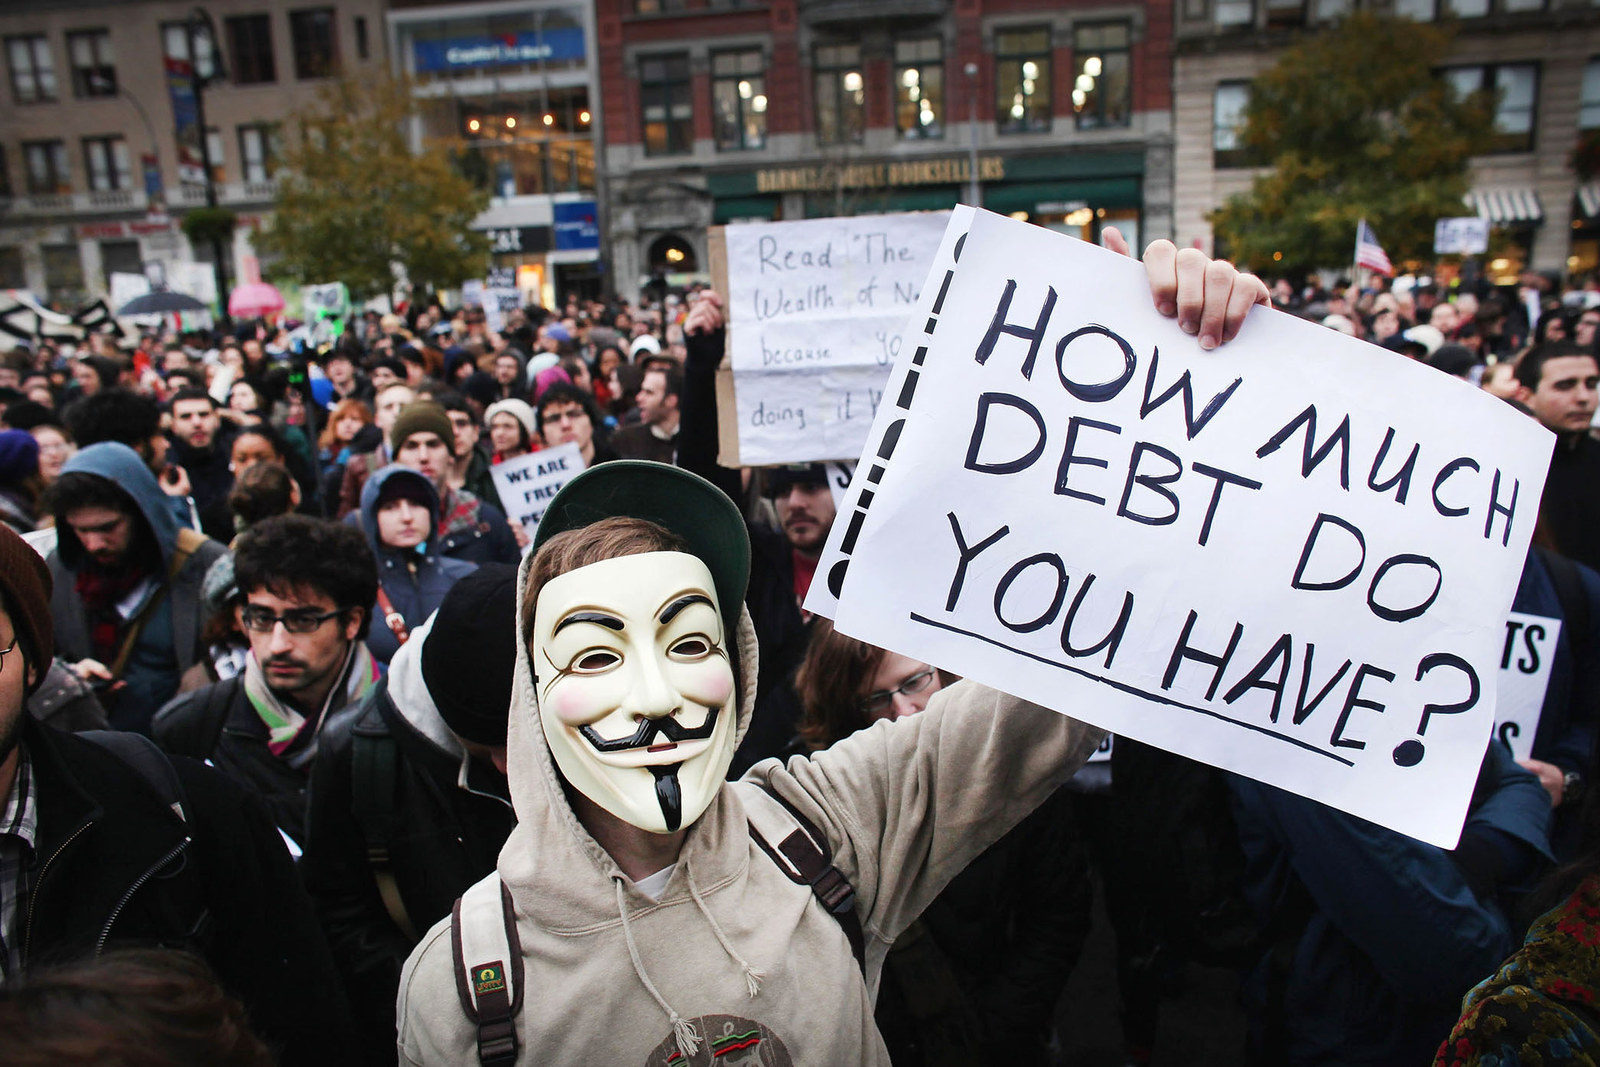 26 Of The Most Powerful Pictures From The Occupy Wall Street Movement